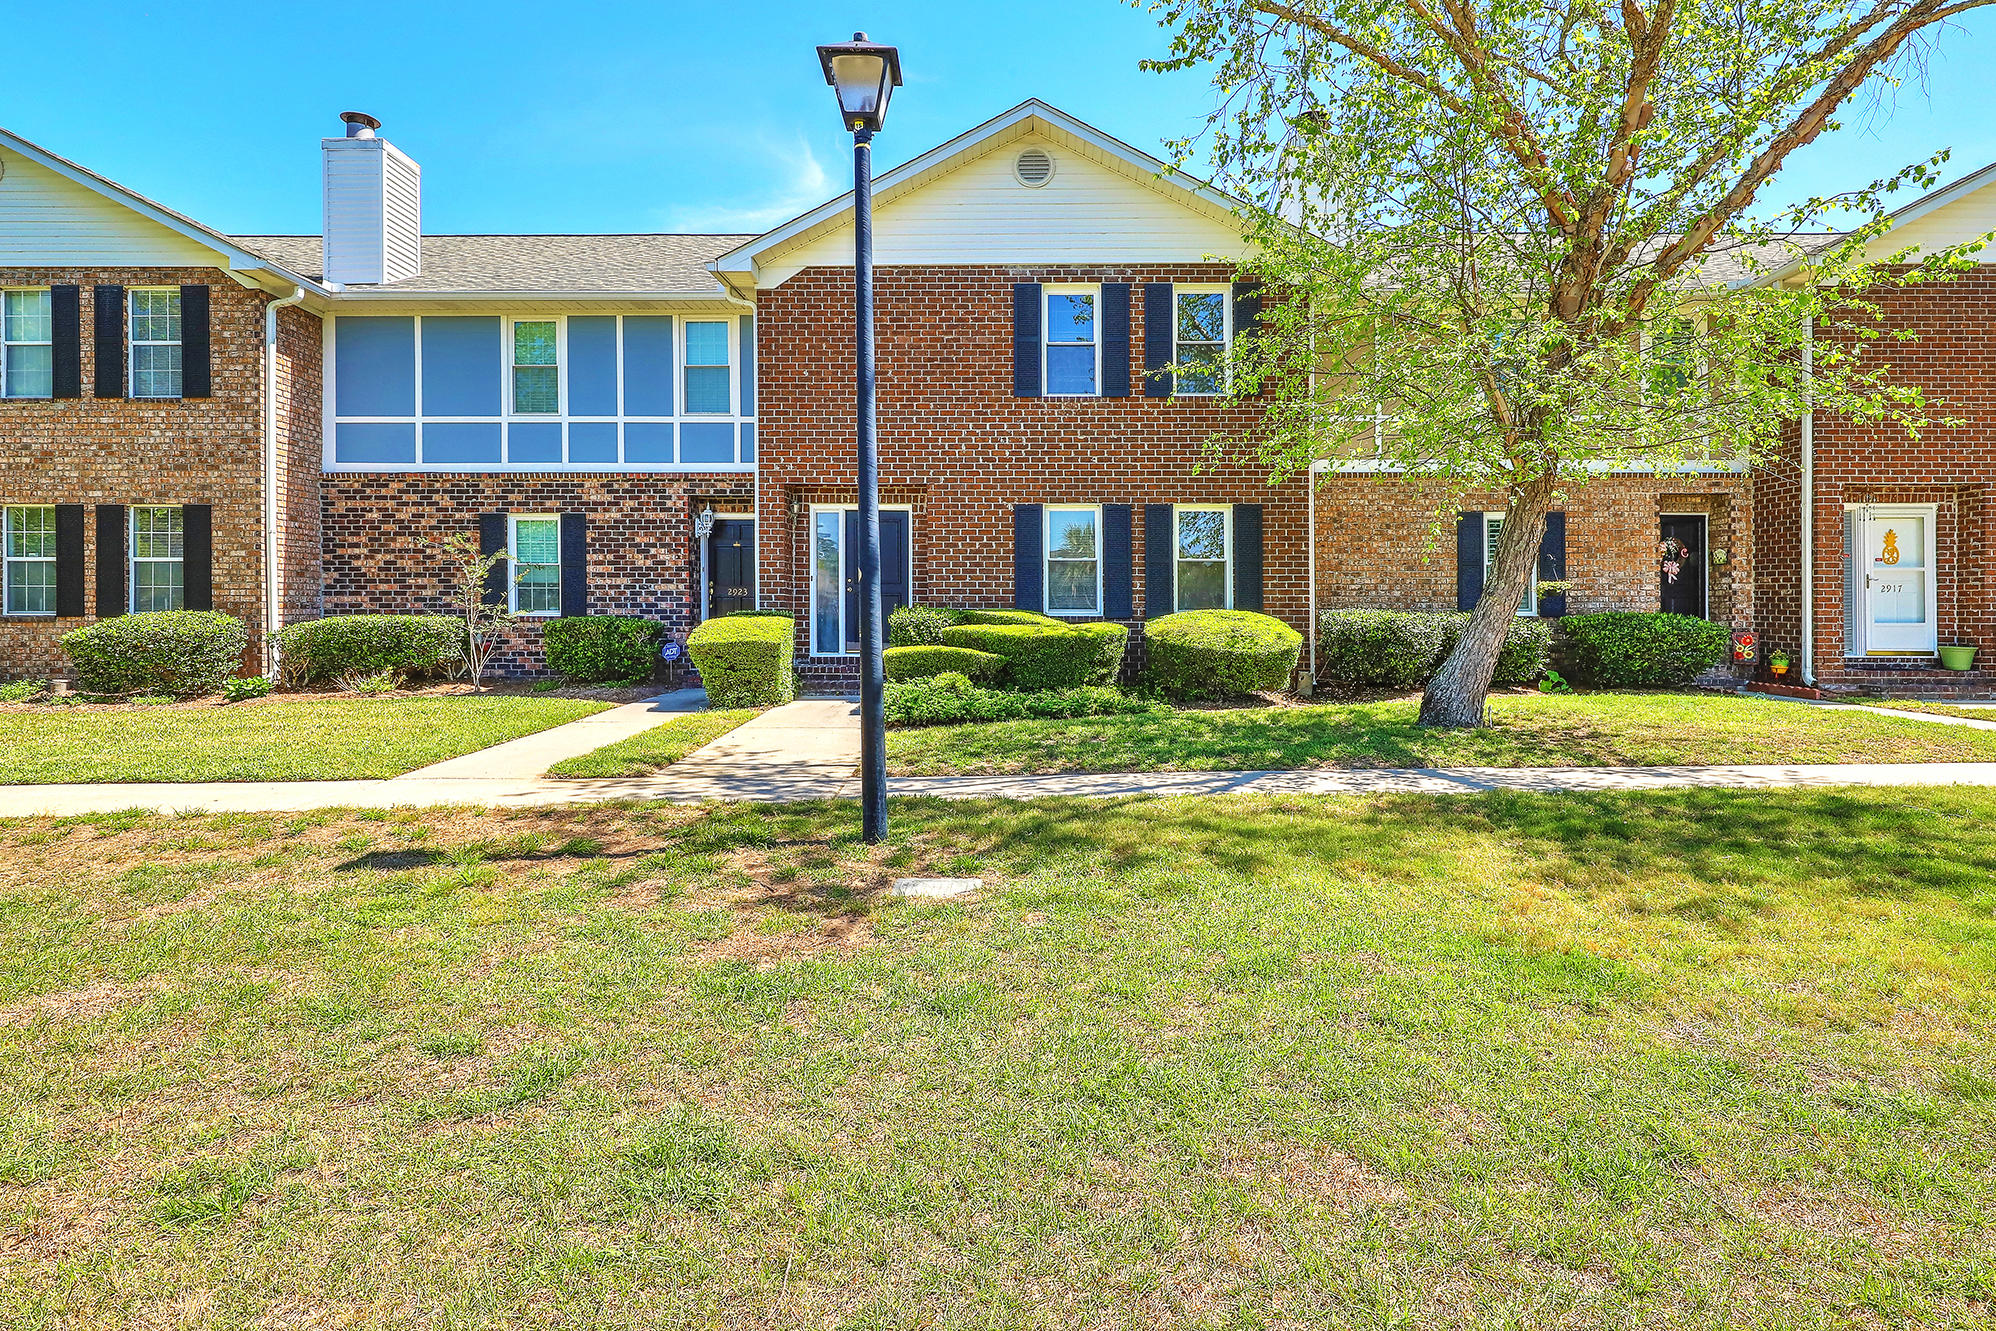 Old Towne Villas Homes For Sale - 2921 Cathedral, Charleston, SC - 37